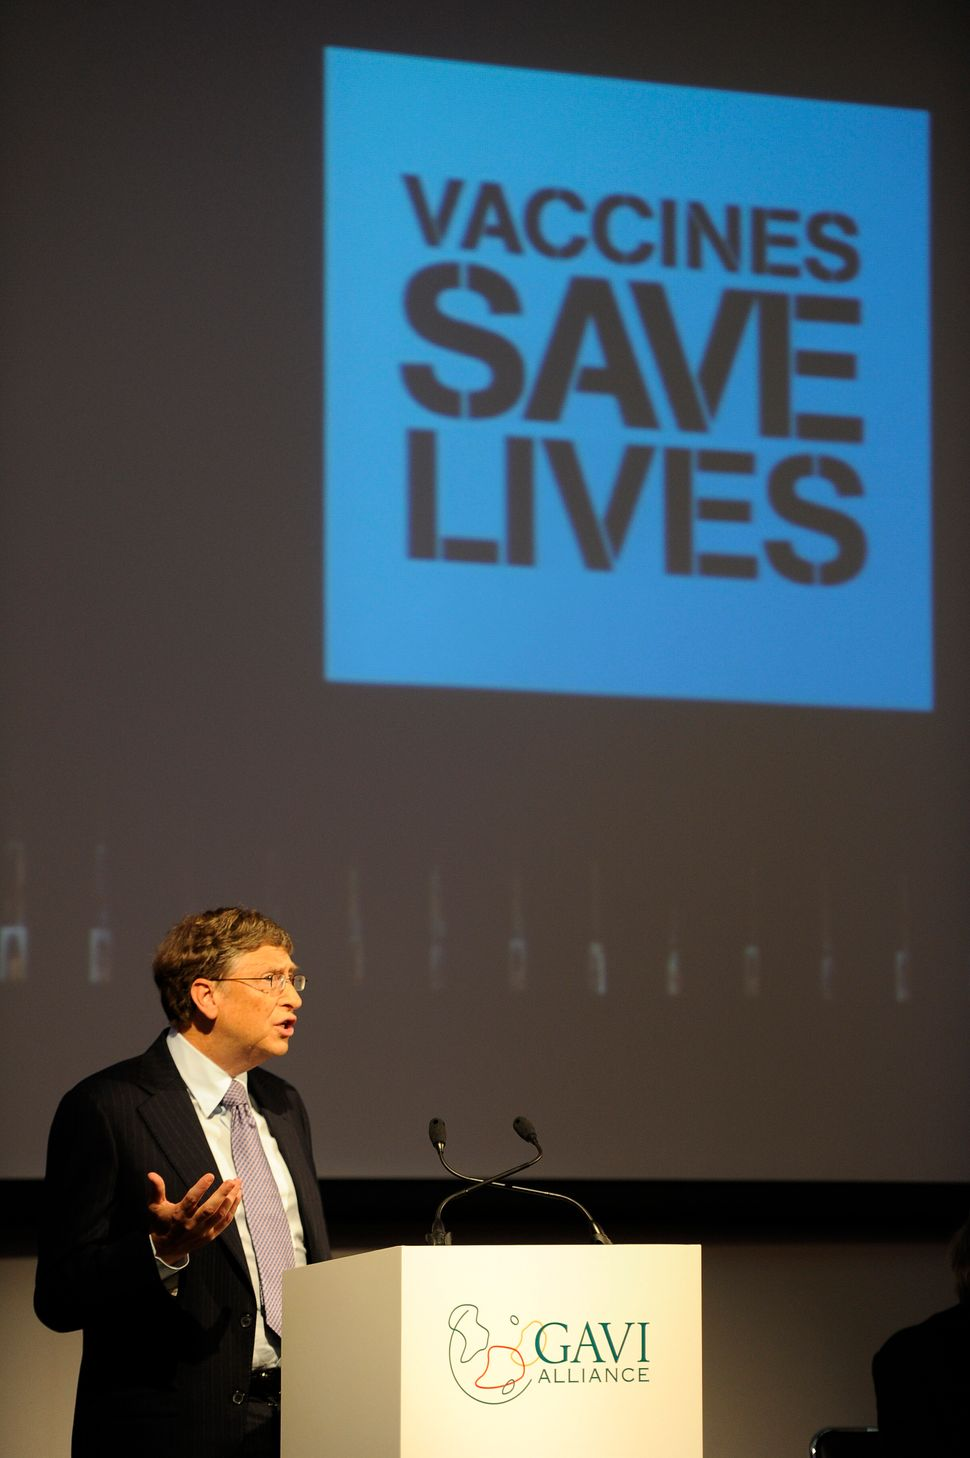 Gates speaking to the Gavi Alliance, a public-private partnership to increase immunization in the world's poorest countries.